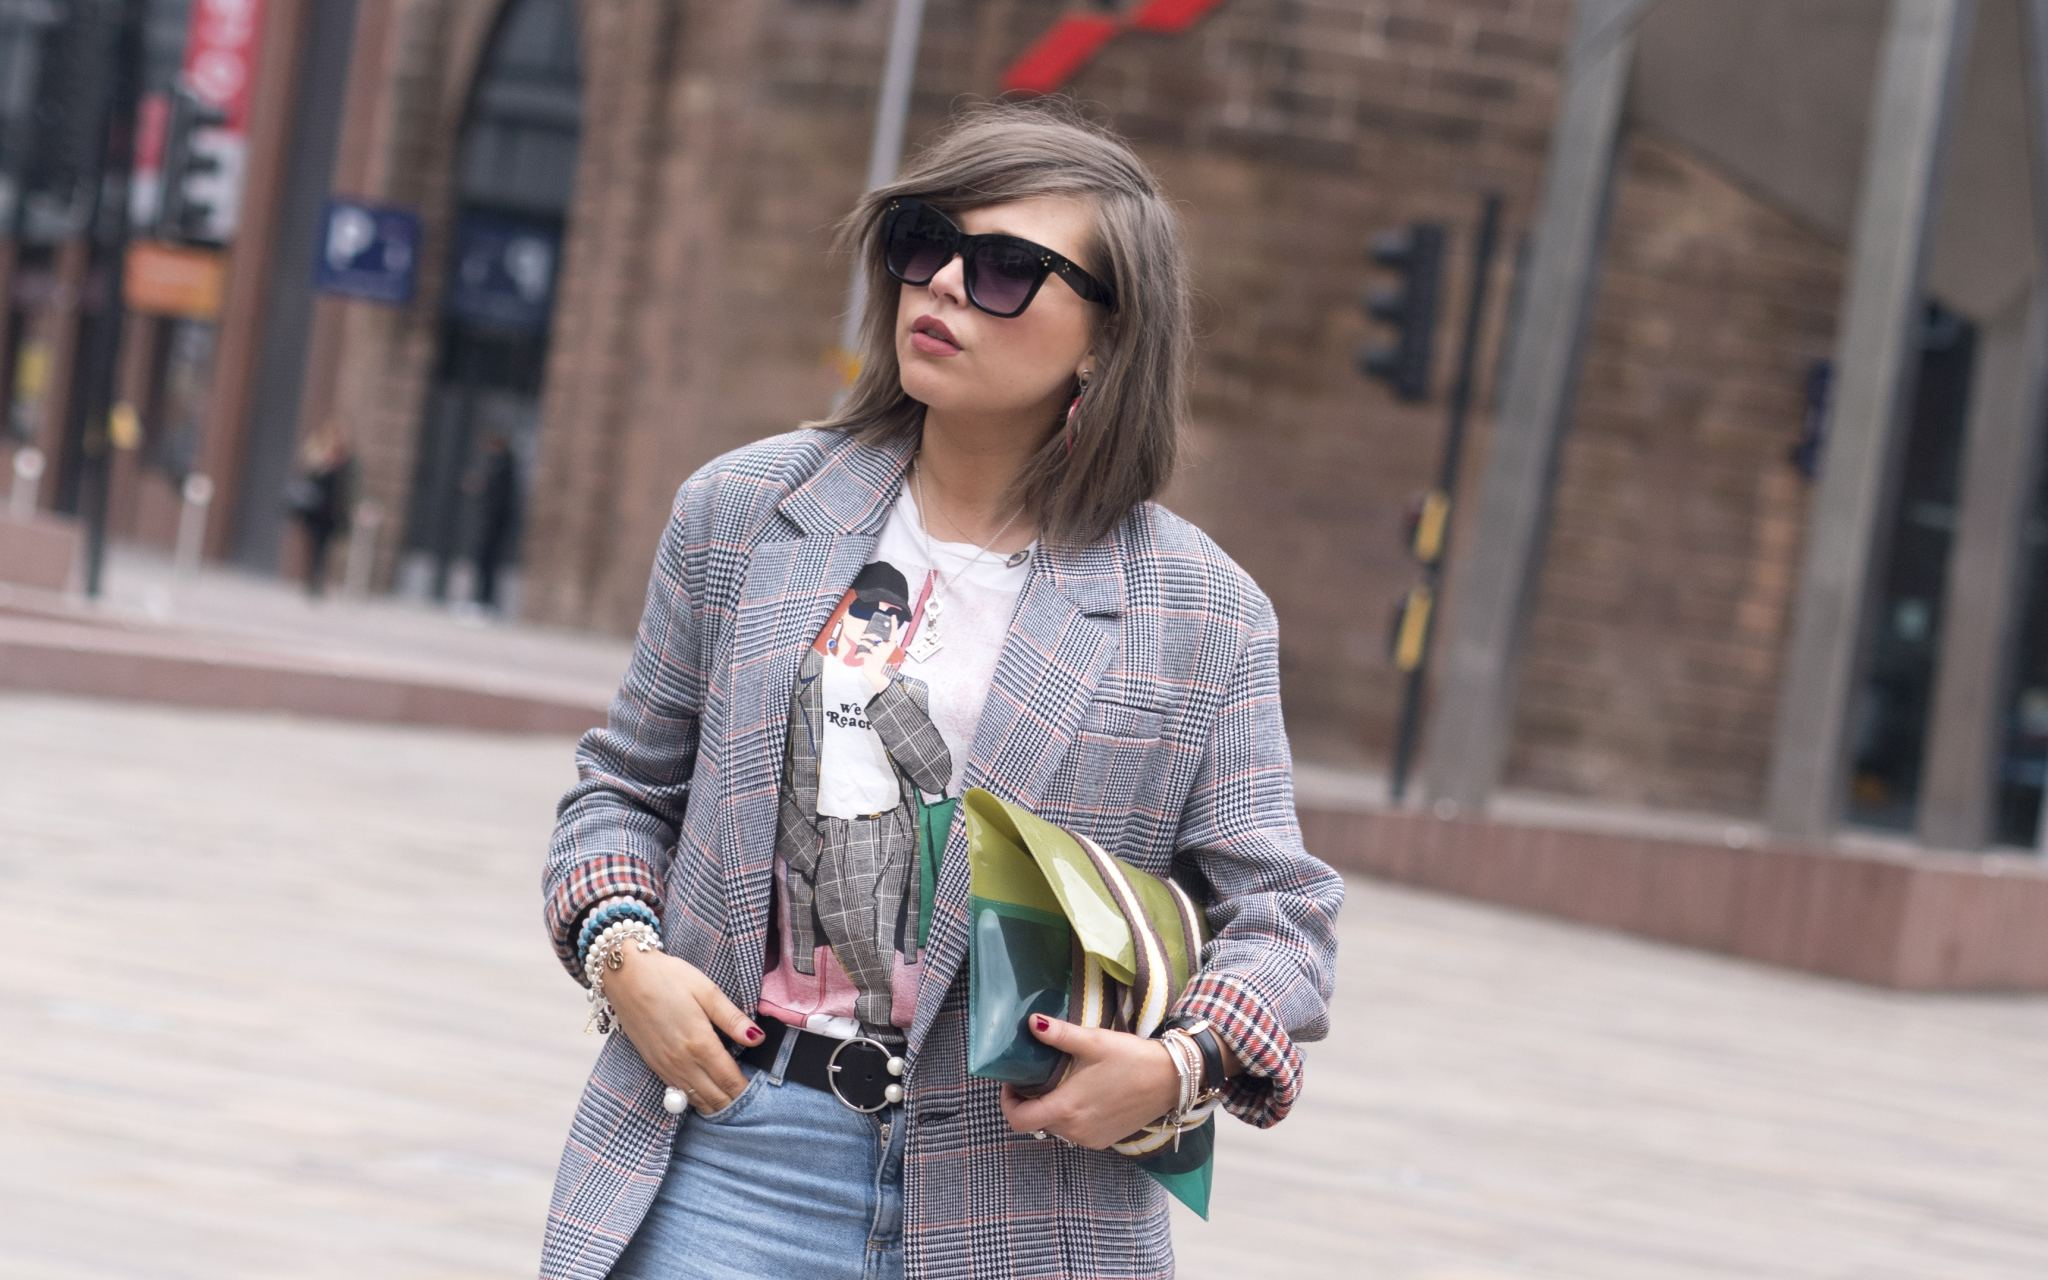 manchester fashion blogger , fashion blogger, celine sunglasses, oversized zara blazer, dress scandinavian, pernille teisbaek ,manchester